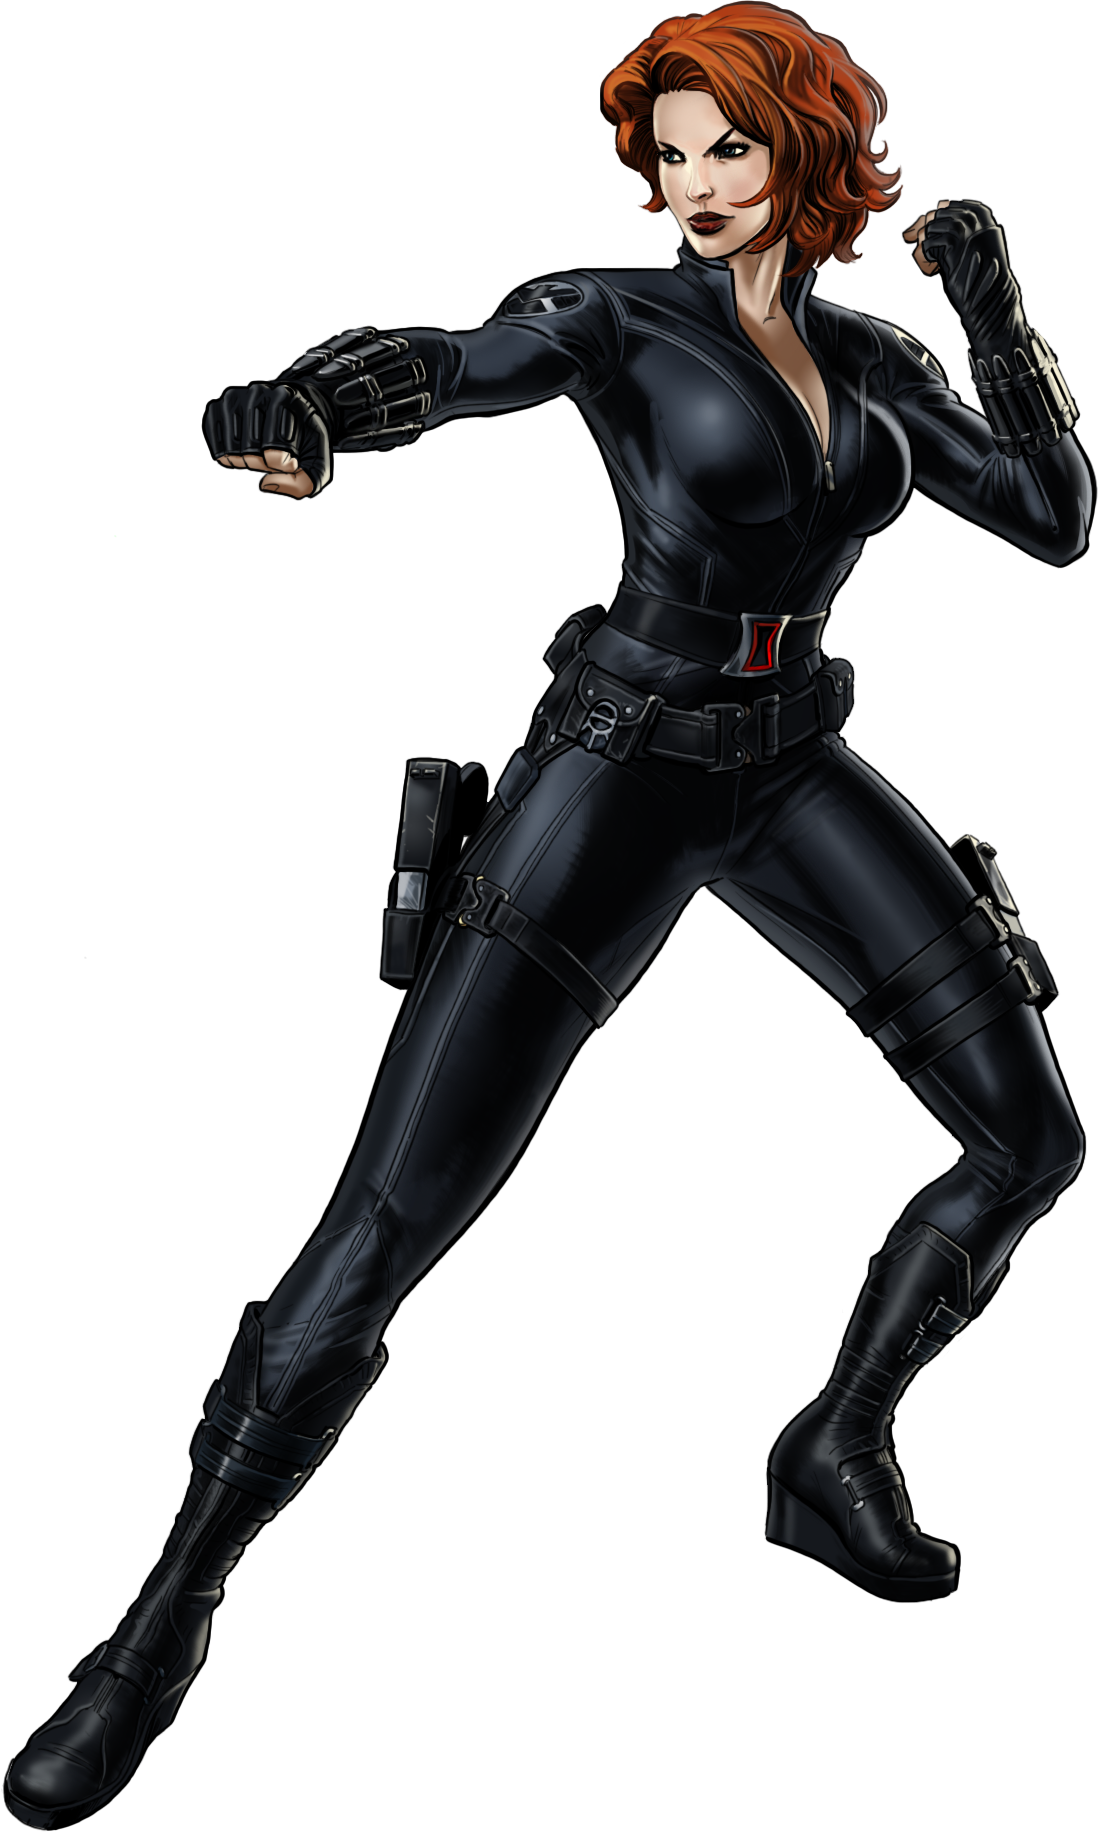 Black Widow Free Download PNG Image